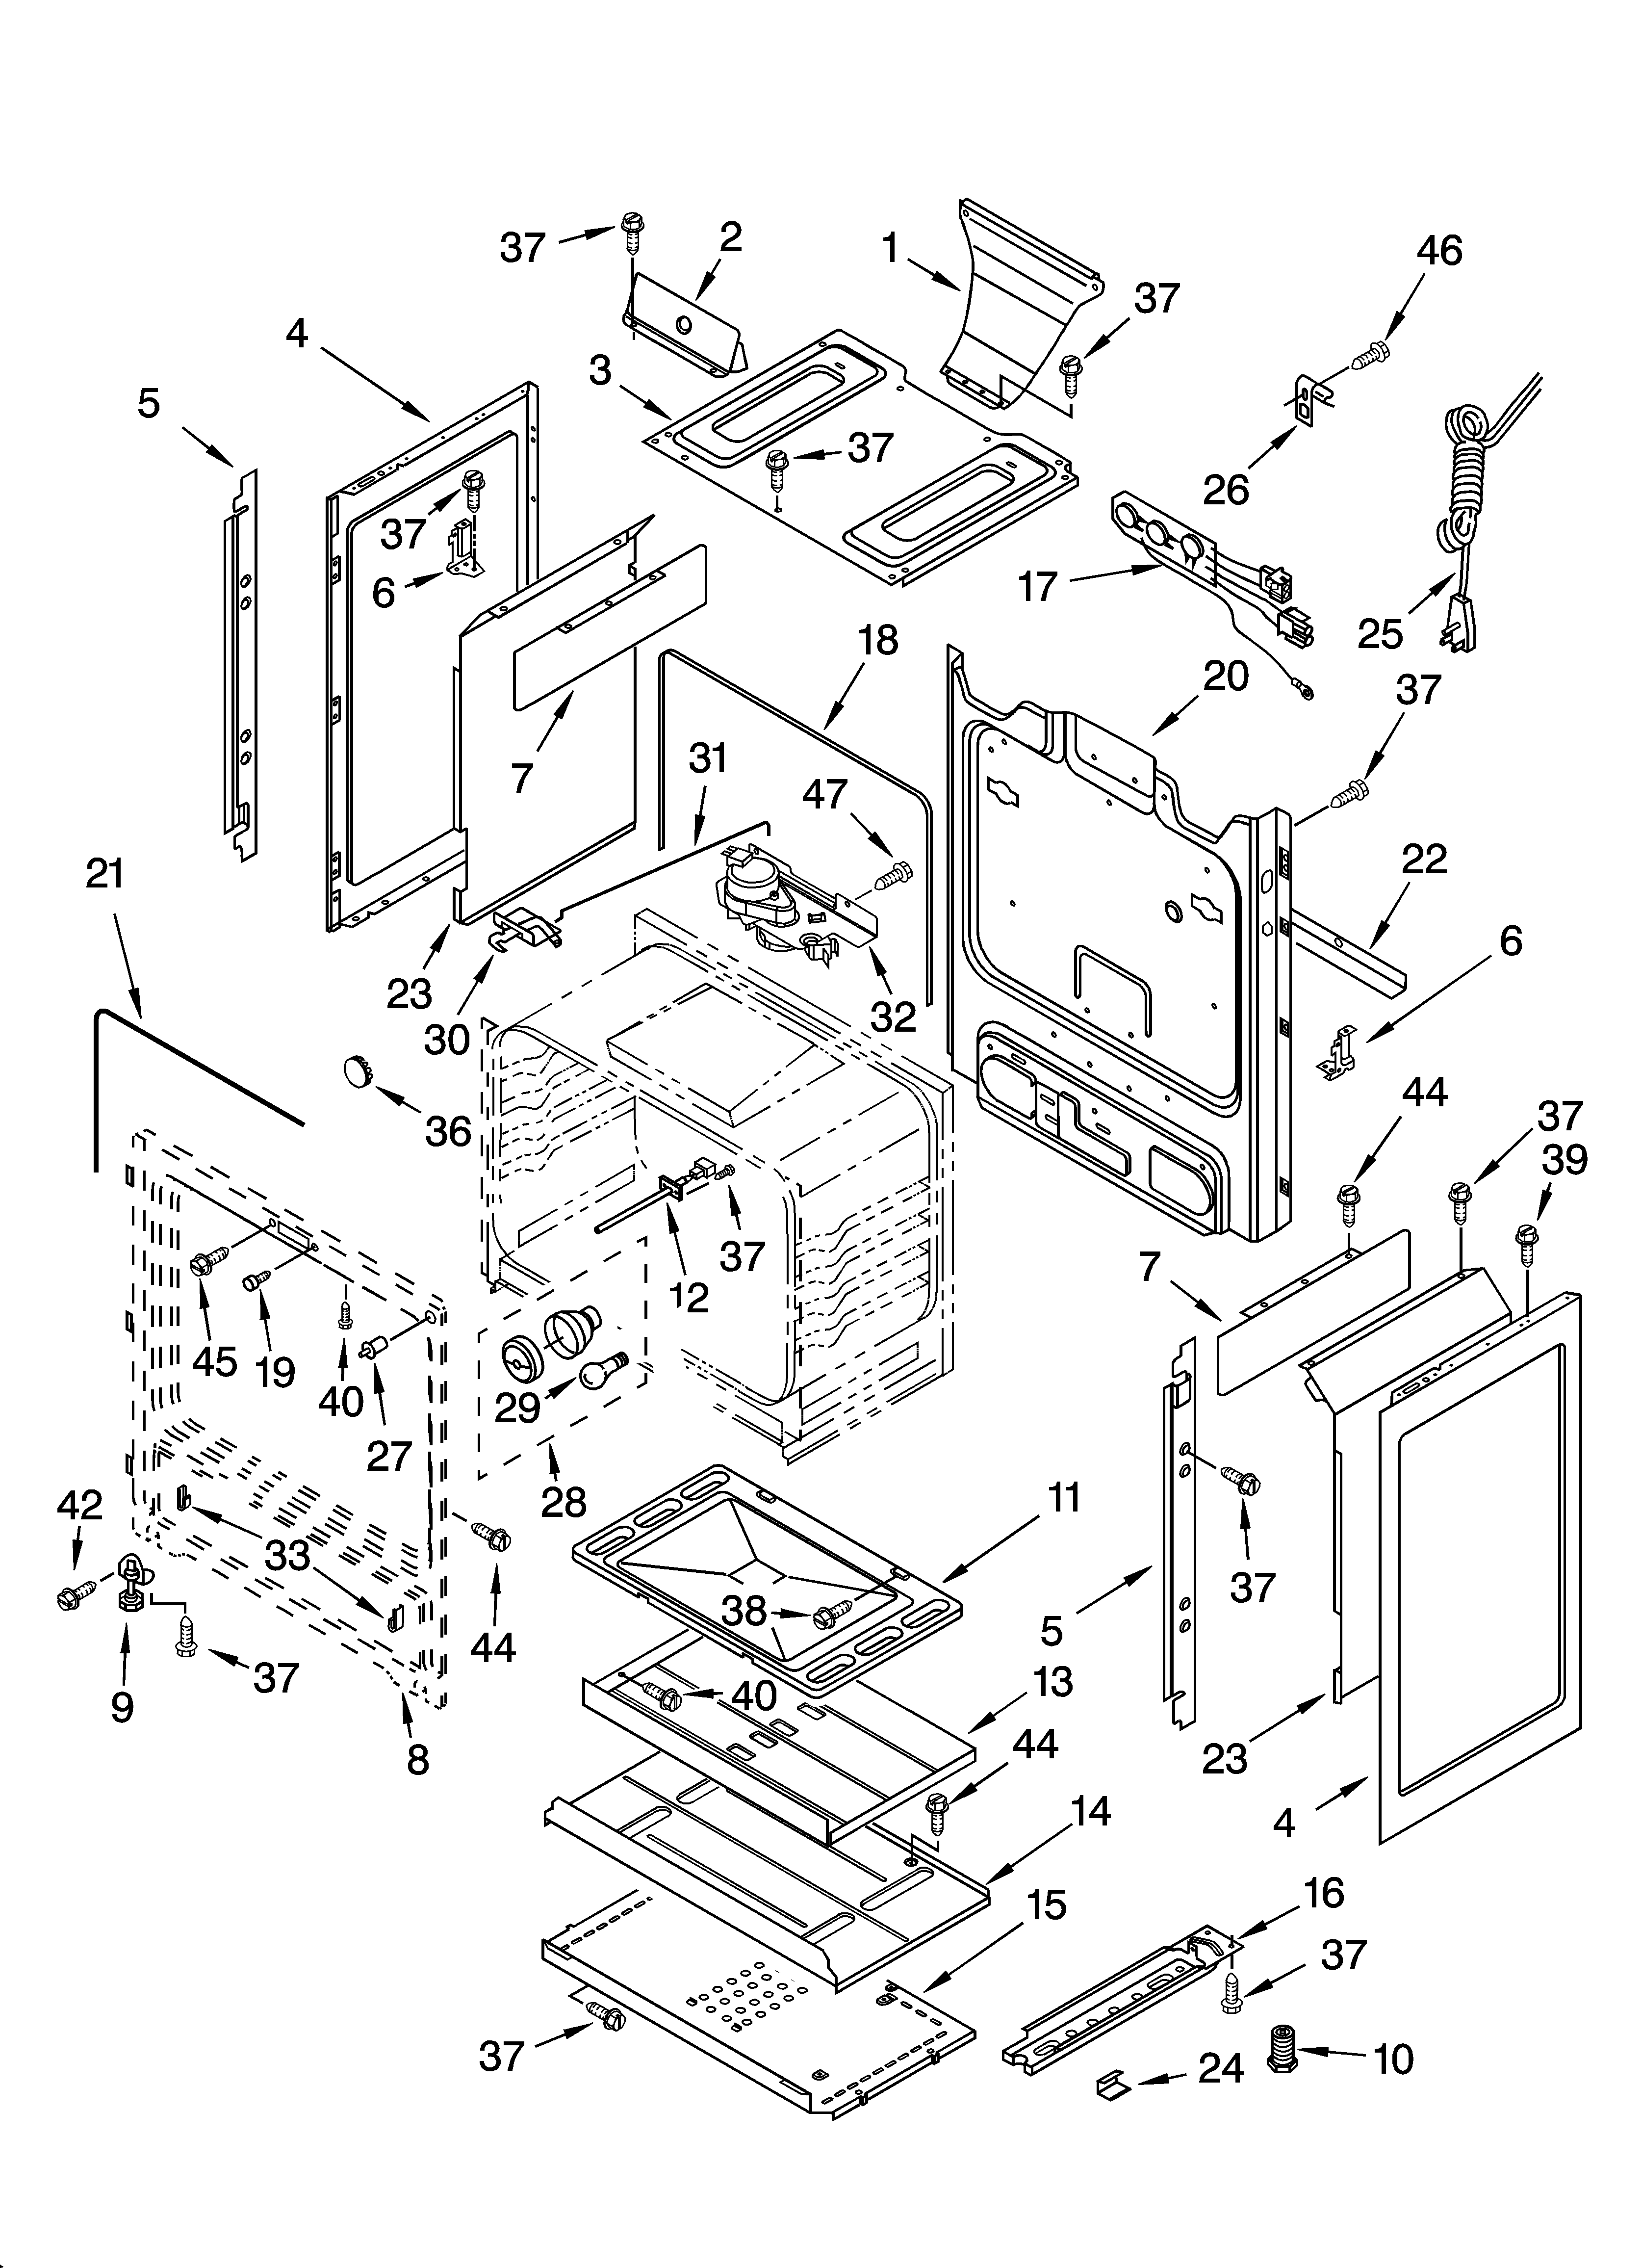 Whirlpool GS440LEMQ1 chassis parts diagram